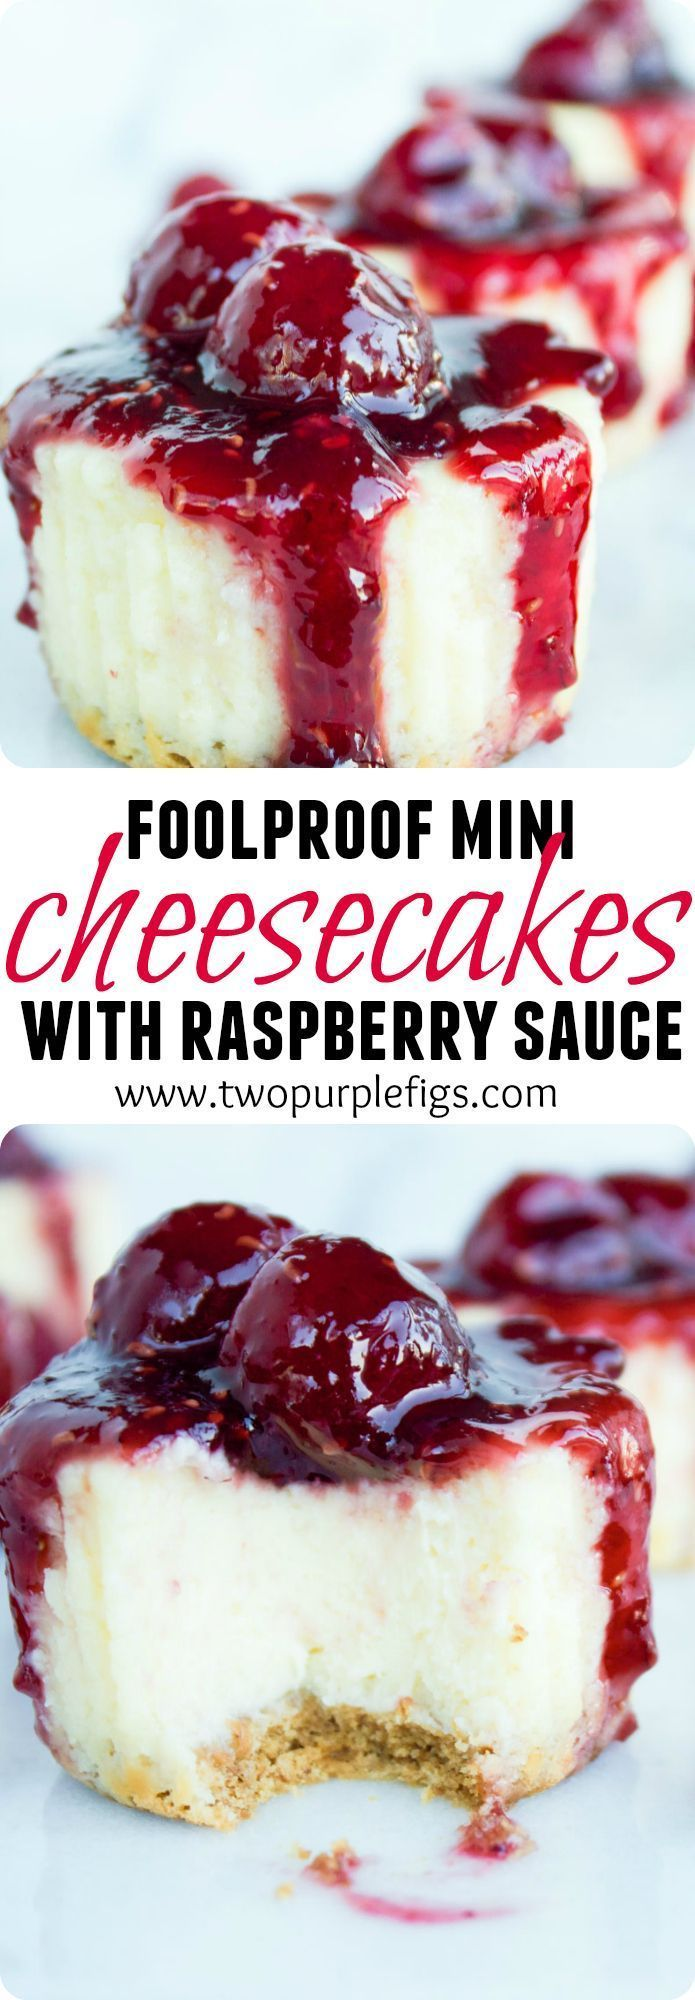 Mini Raspberry Cheesecakes. Get the recipe for a fool proof way to master the…